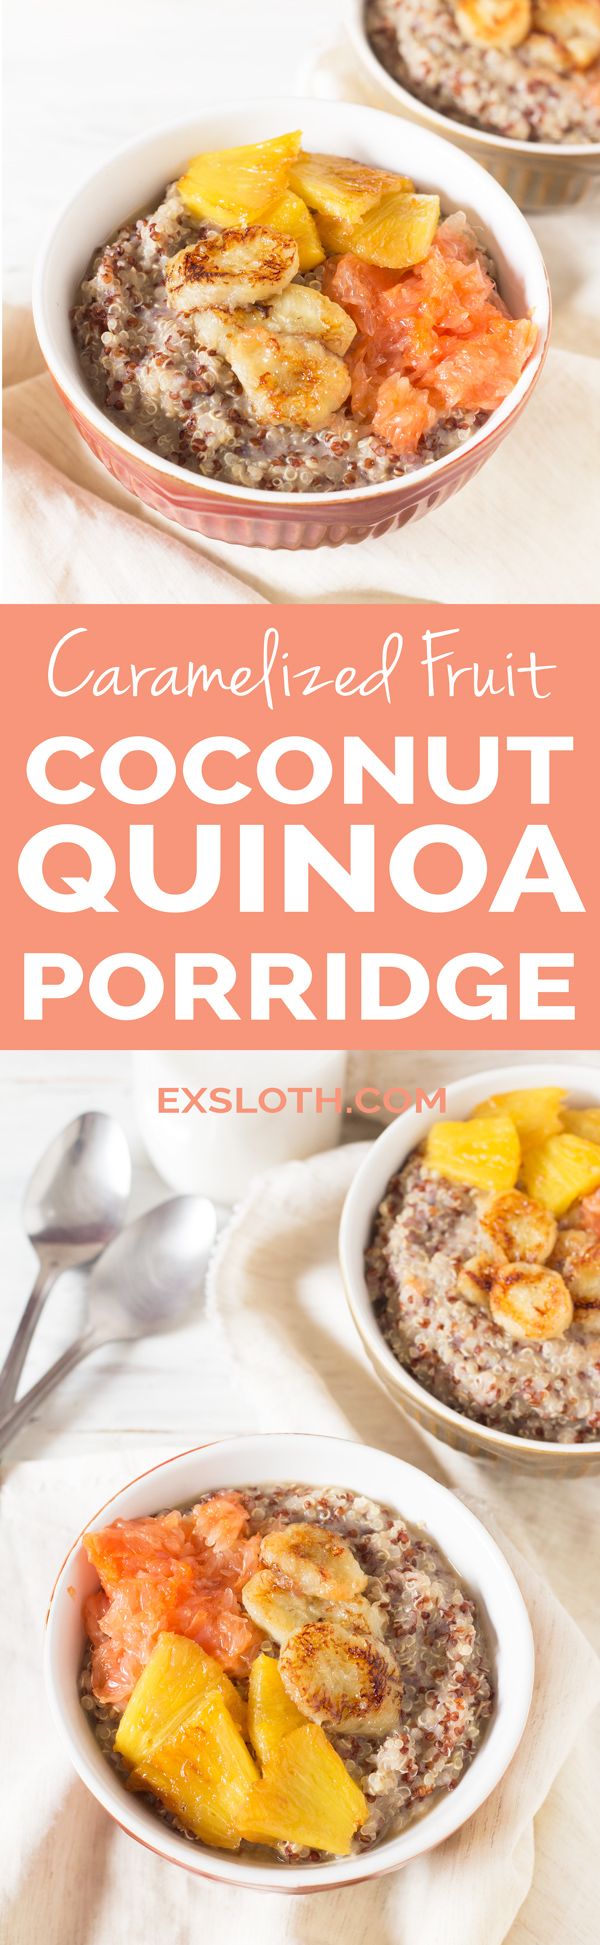 Easy Gluten-Free Vegan Caramelized Fruit Coconut Quinoa Porridge via @ExSloth | ExSloth.com